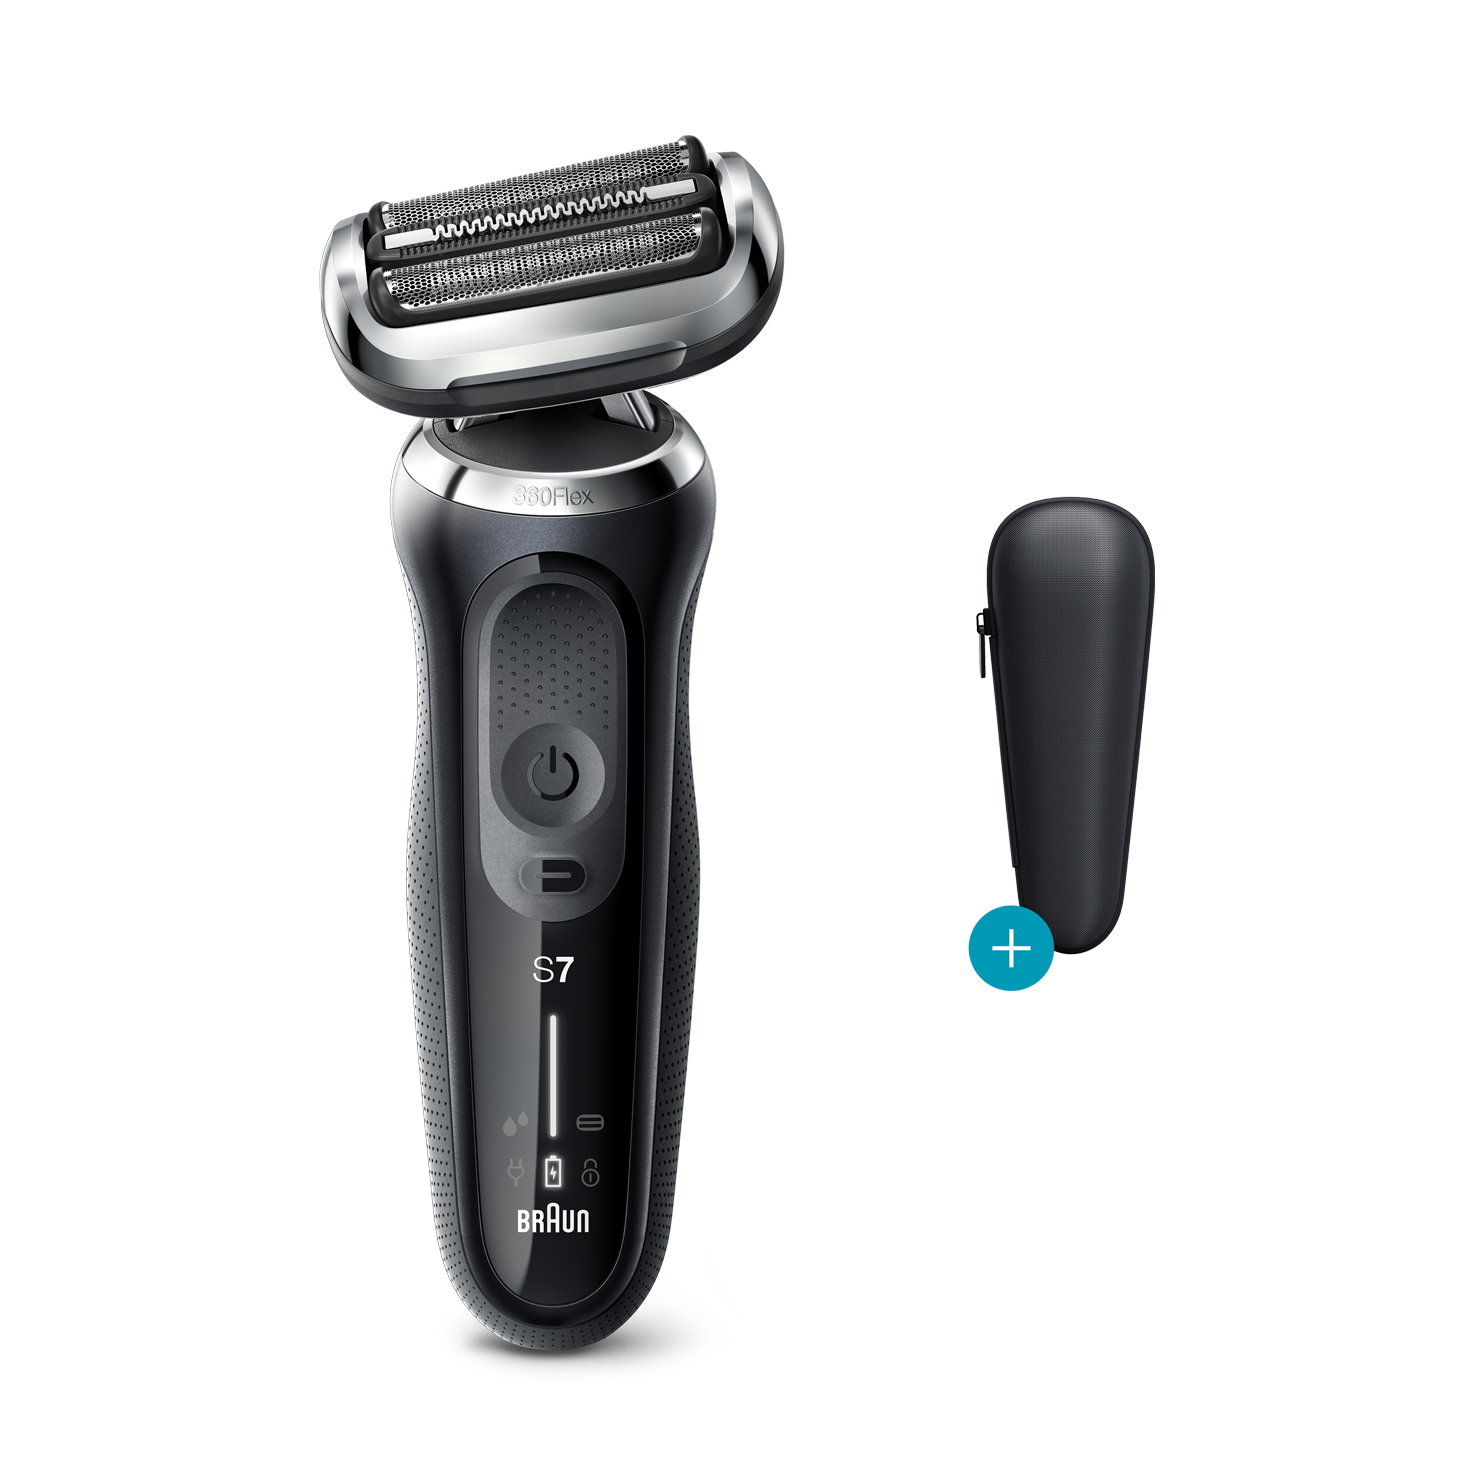 Series 7 70-N1000s shaver